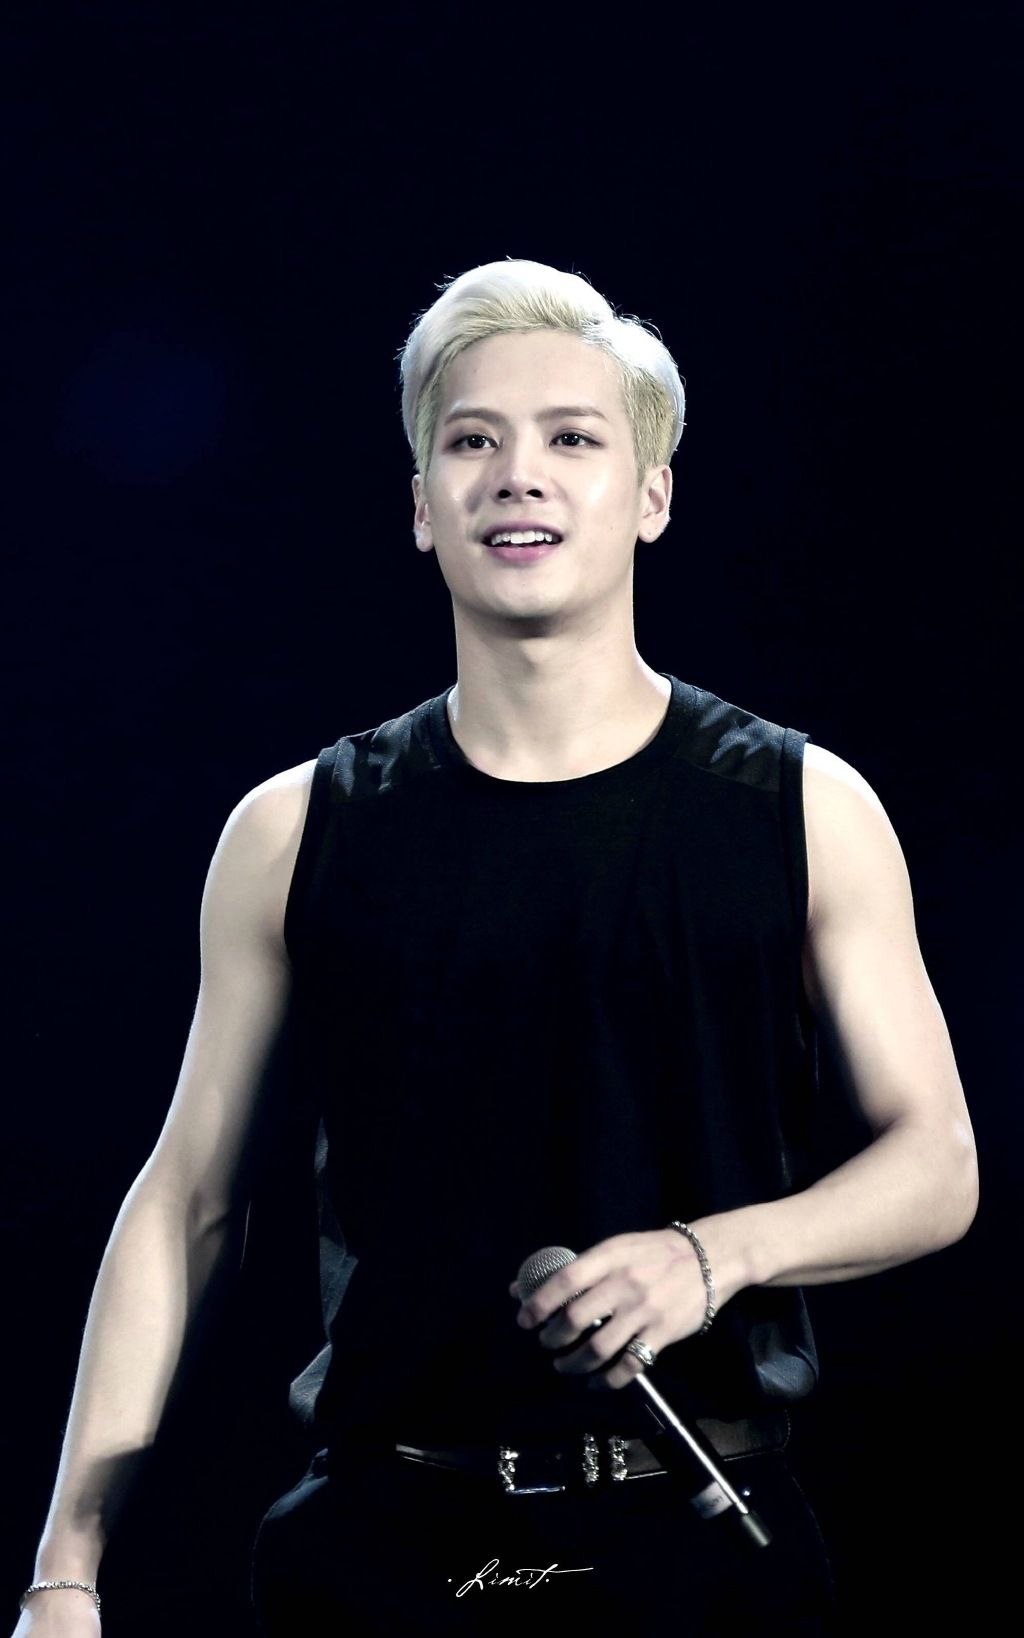 Jackson Got7 #MCM why is he so pretty yet sooo manly | My ...